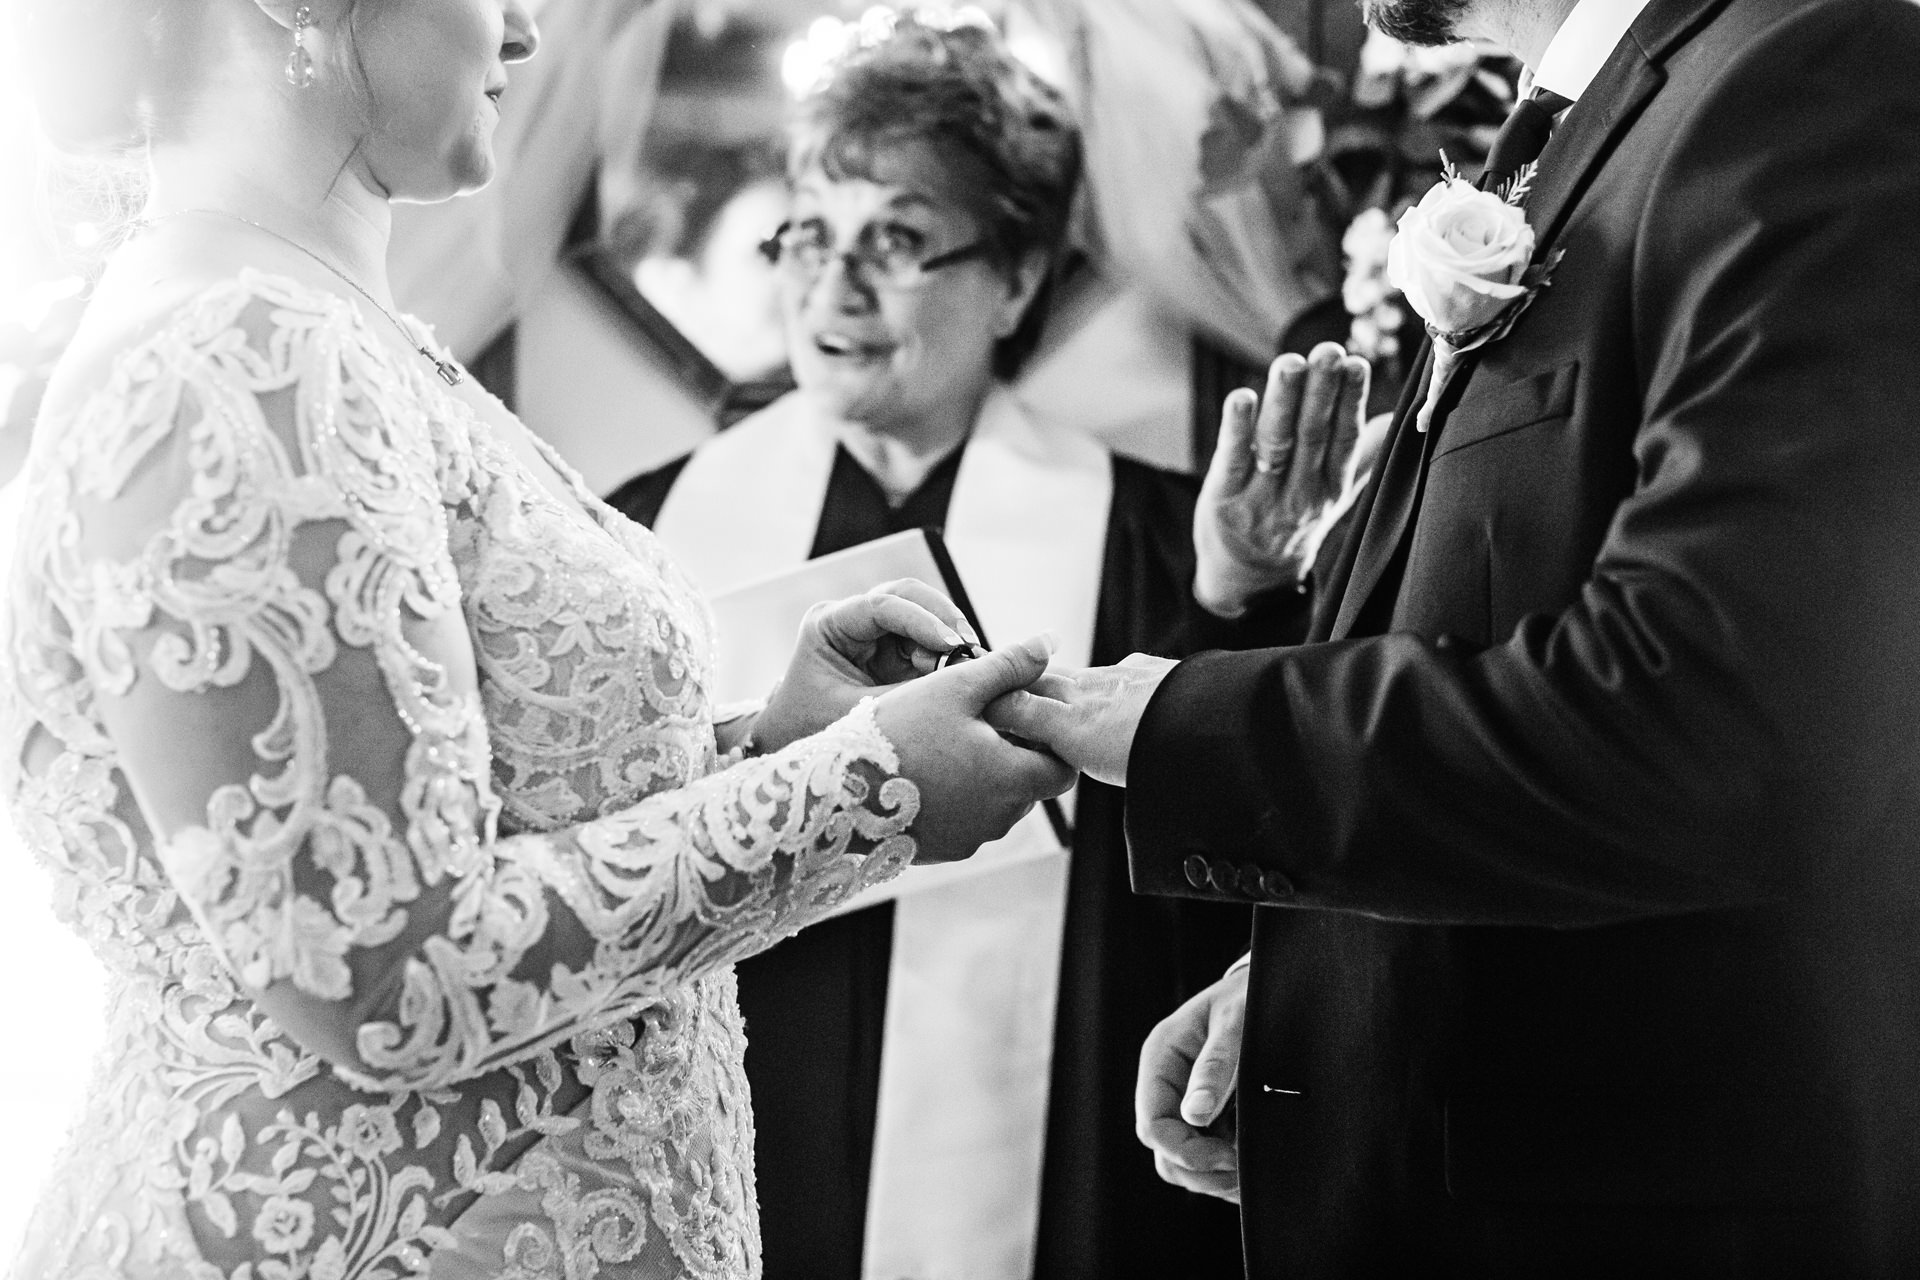 Gables Historic Inn Wedding Venue Ceremony Picture | The couple exchanges rings